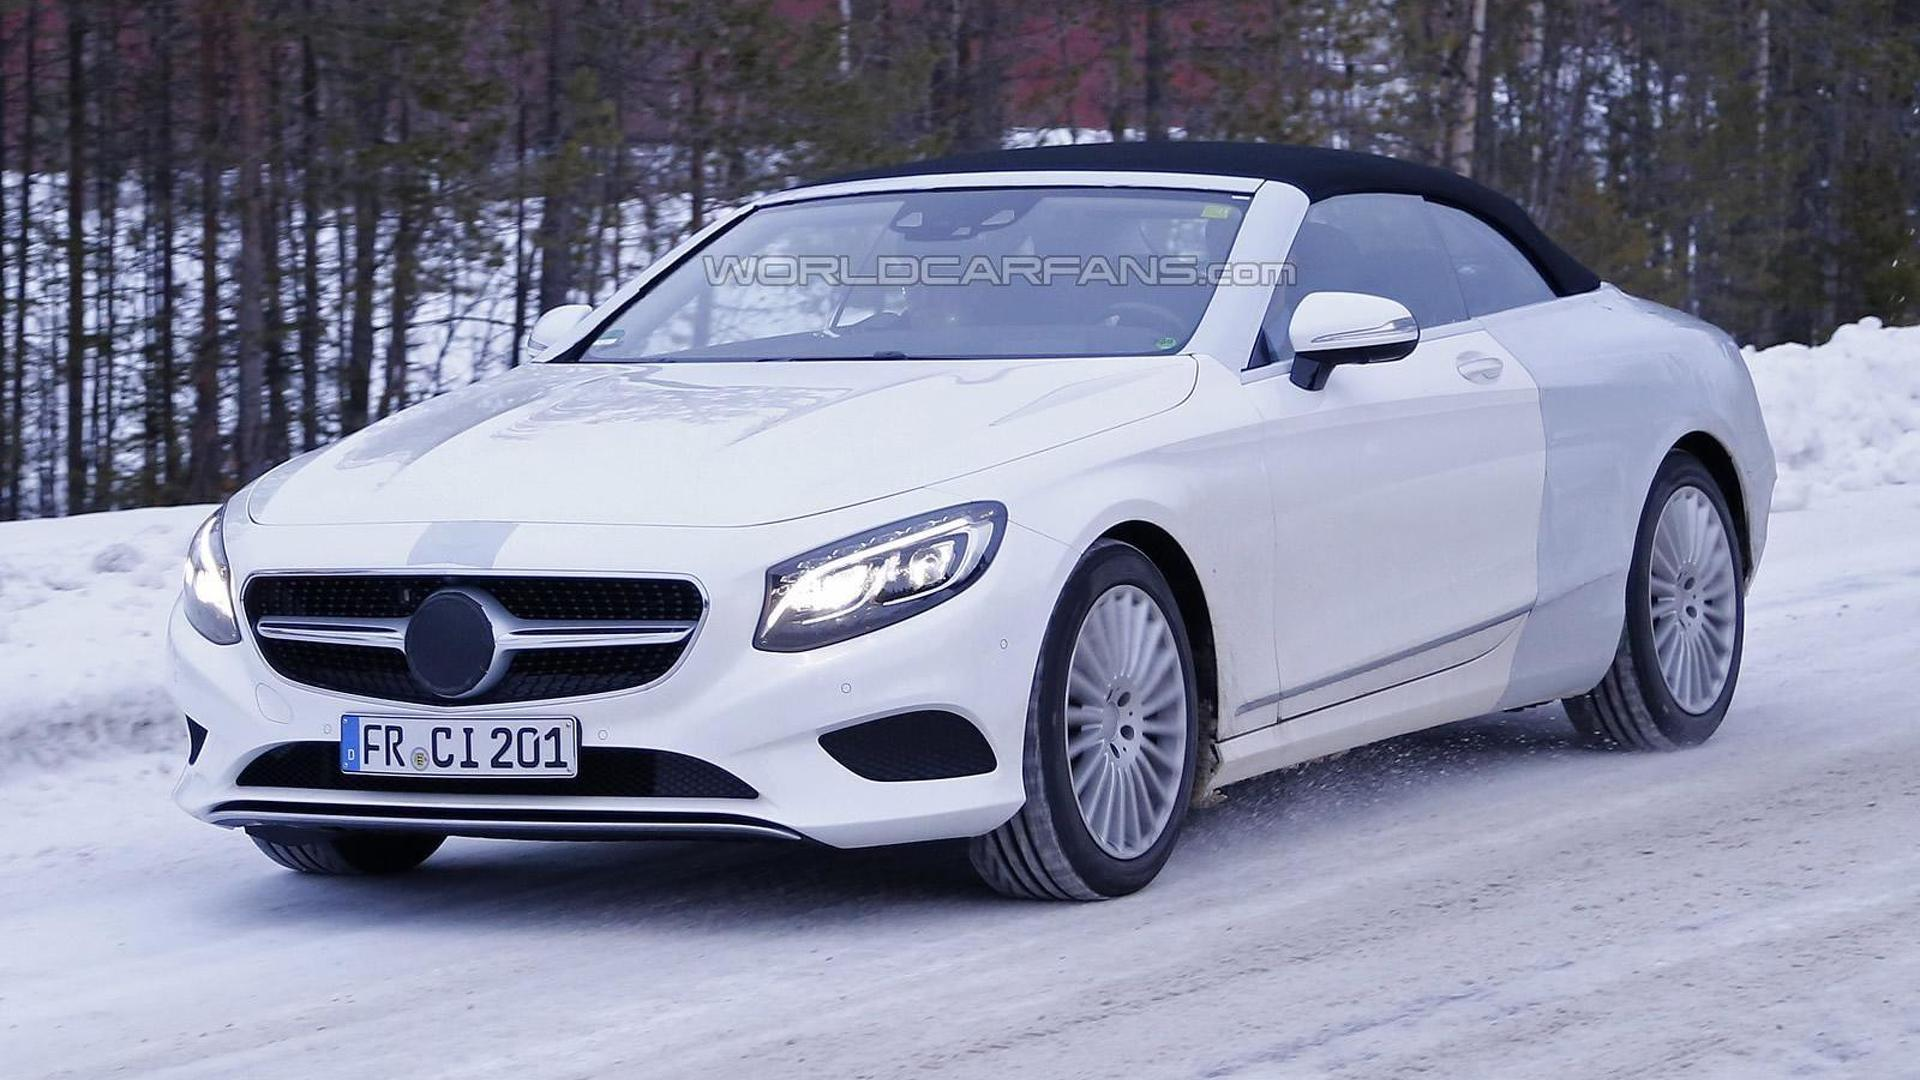 Mercedes Benz S Class Cabriolet spied thinly disguised